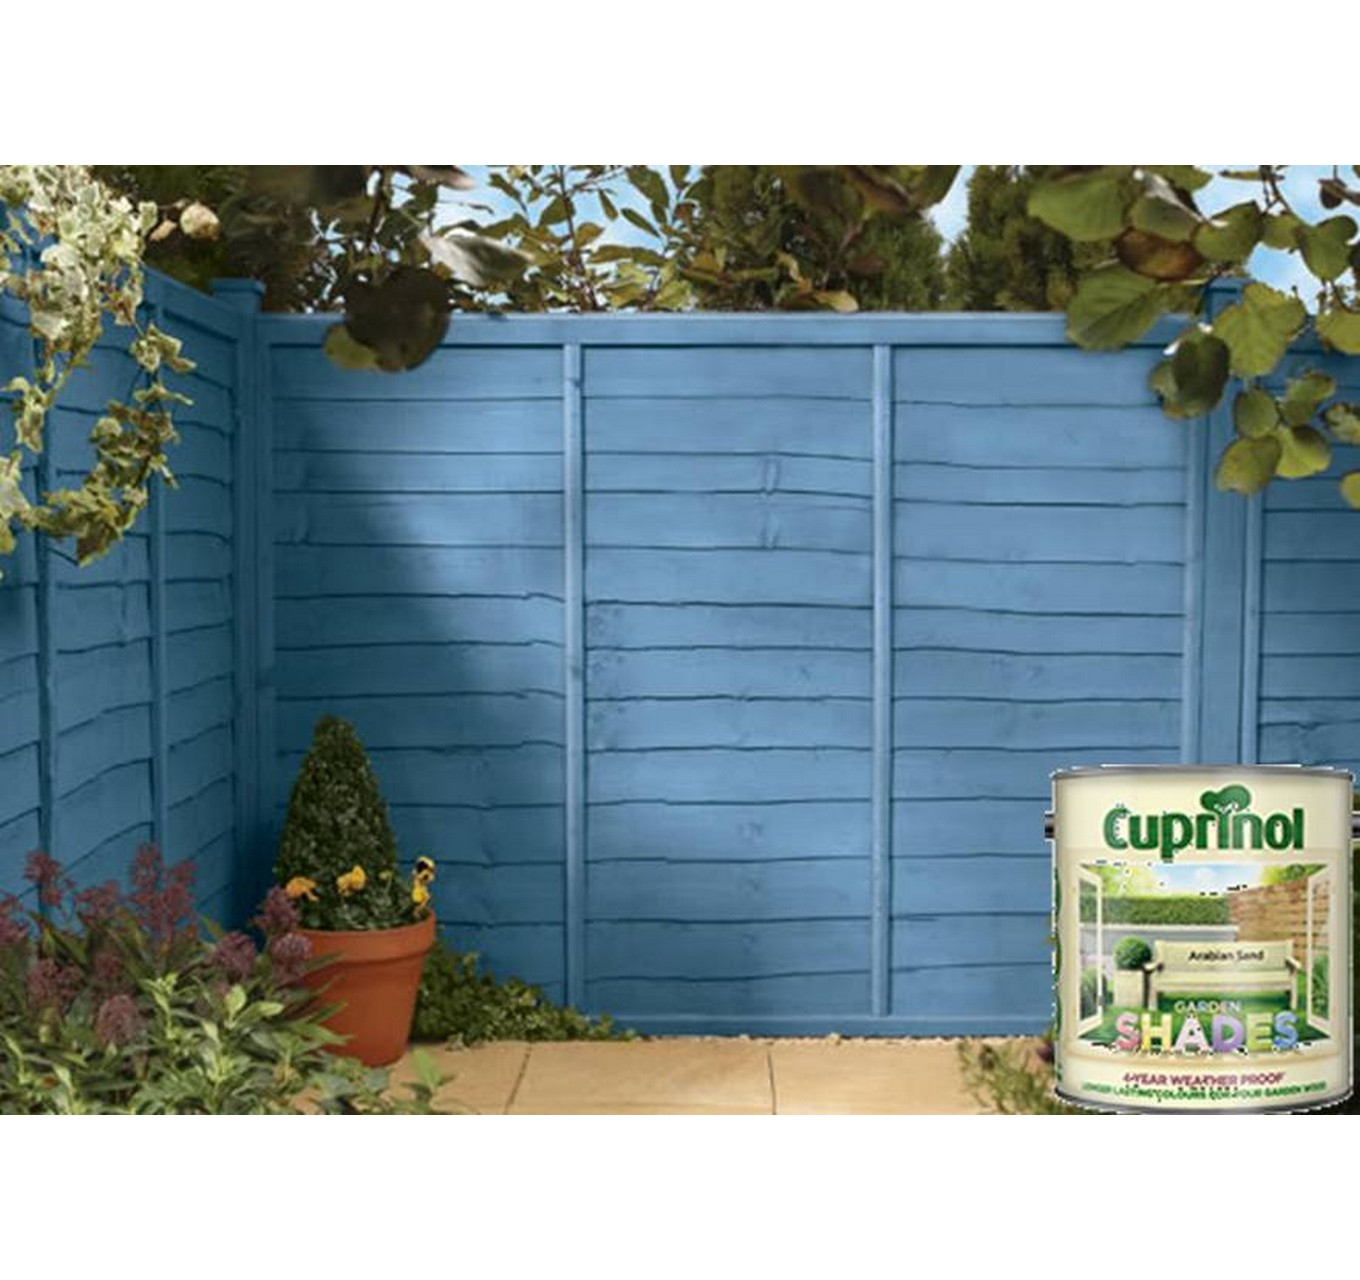 Garden Shades Forget Me Not 1L